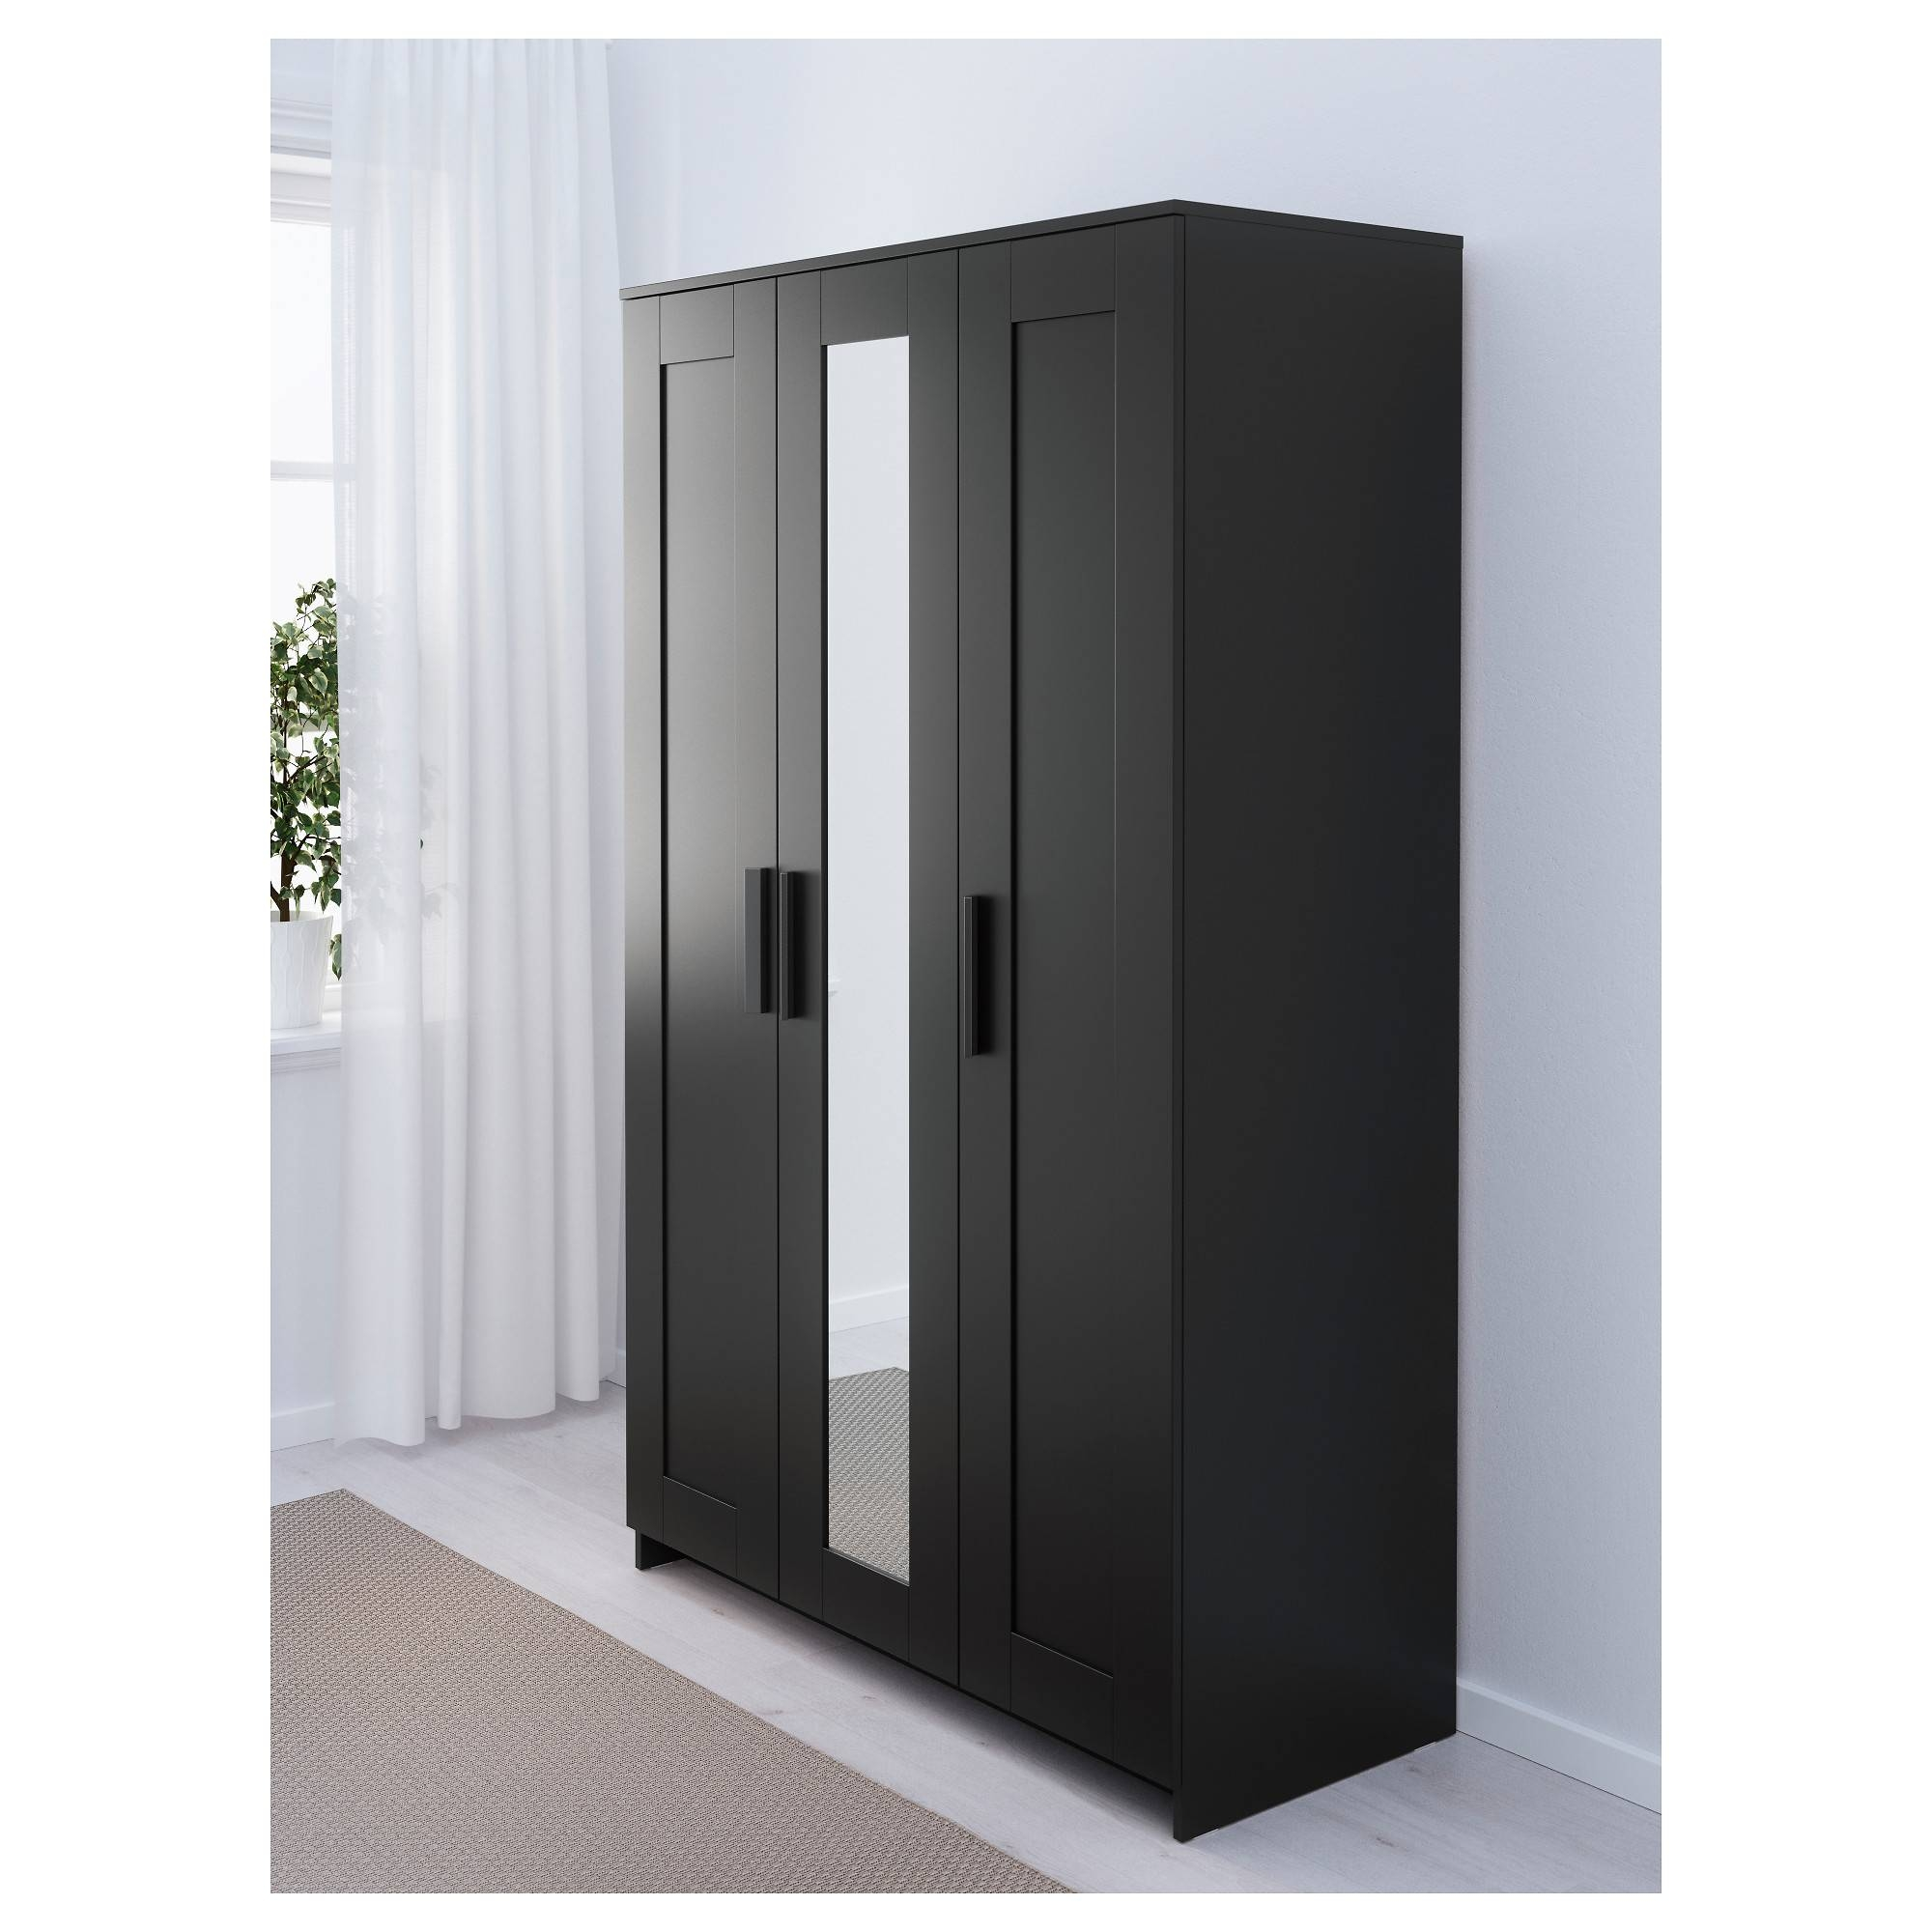 Brimnes Wardrobe With 3 Doors - White - Ikea in One Door Wardrobes With Mirror (Image 2 of 15)